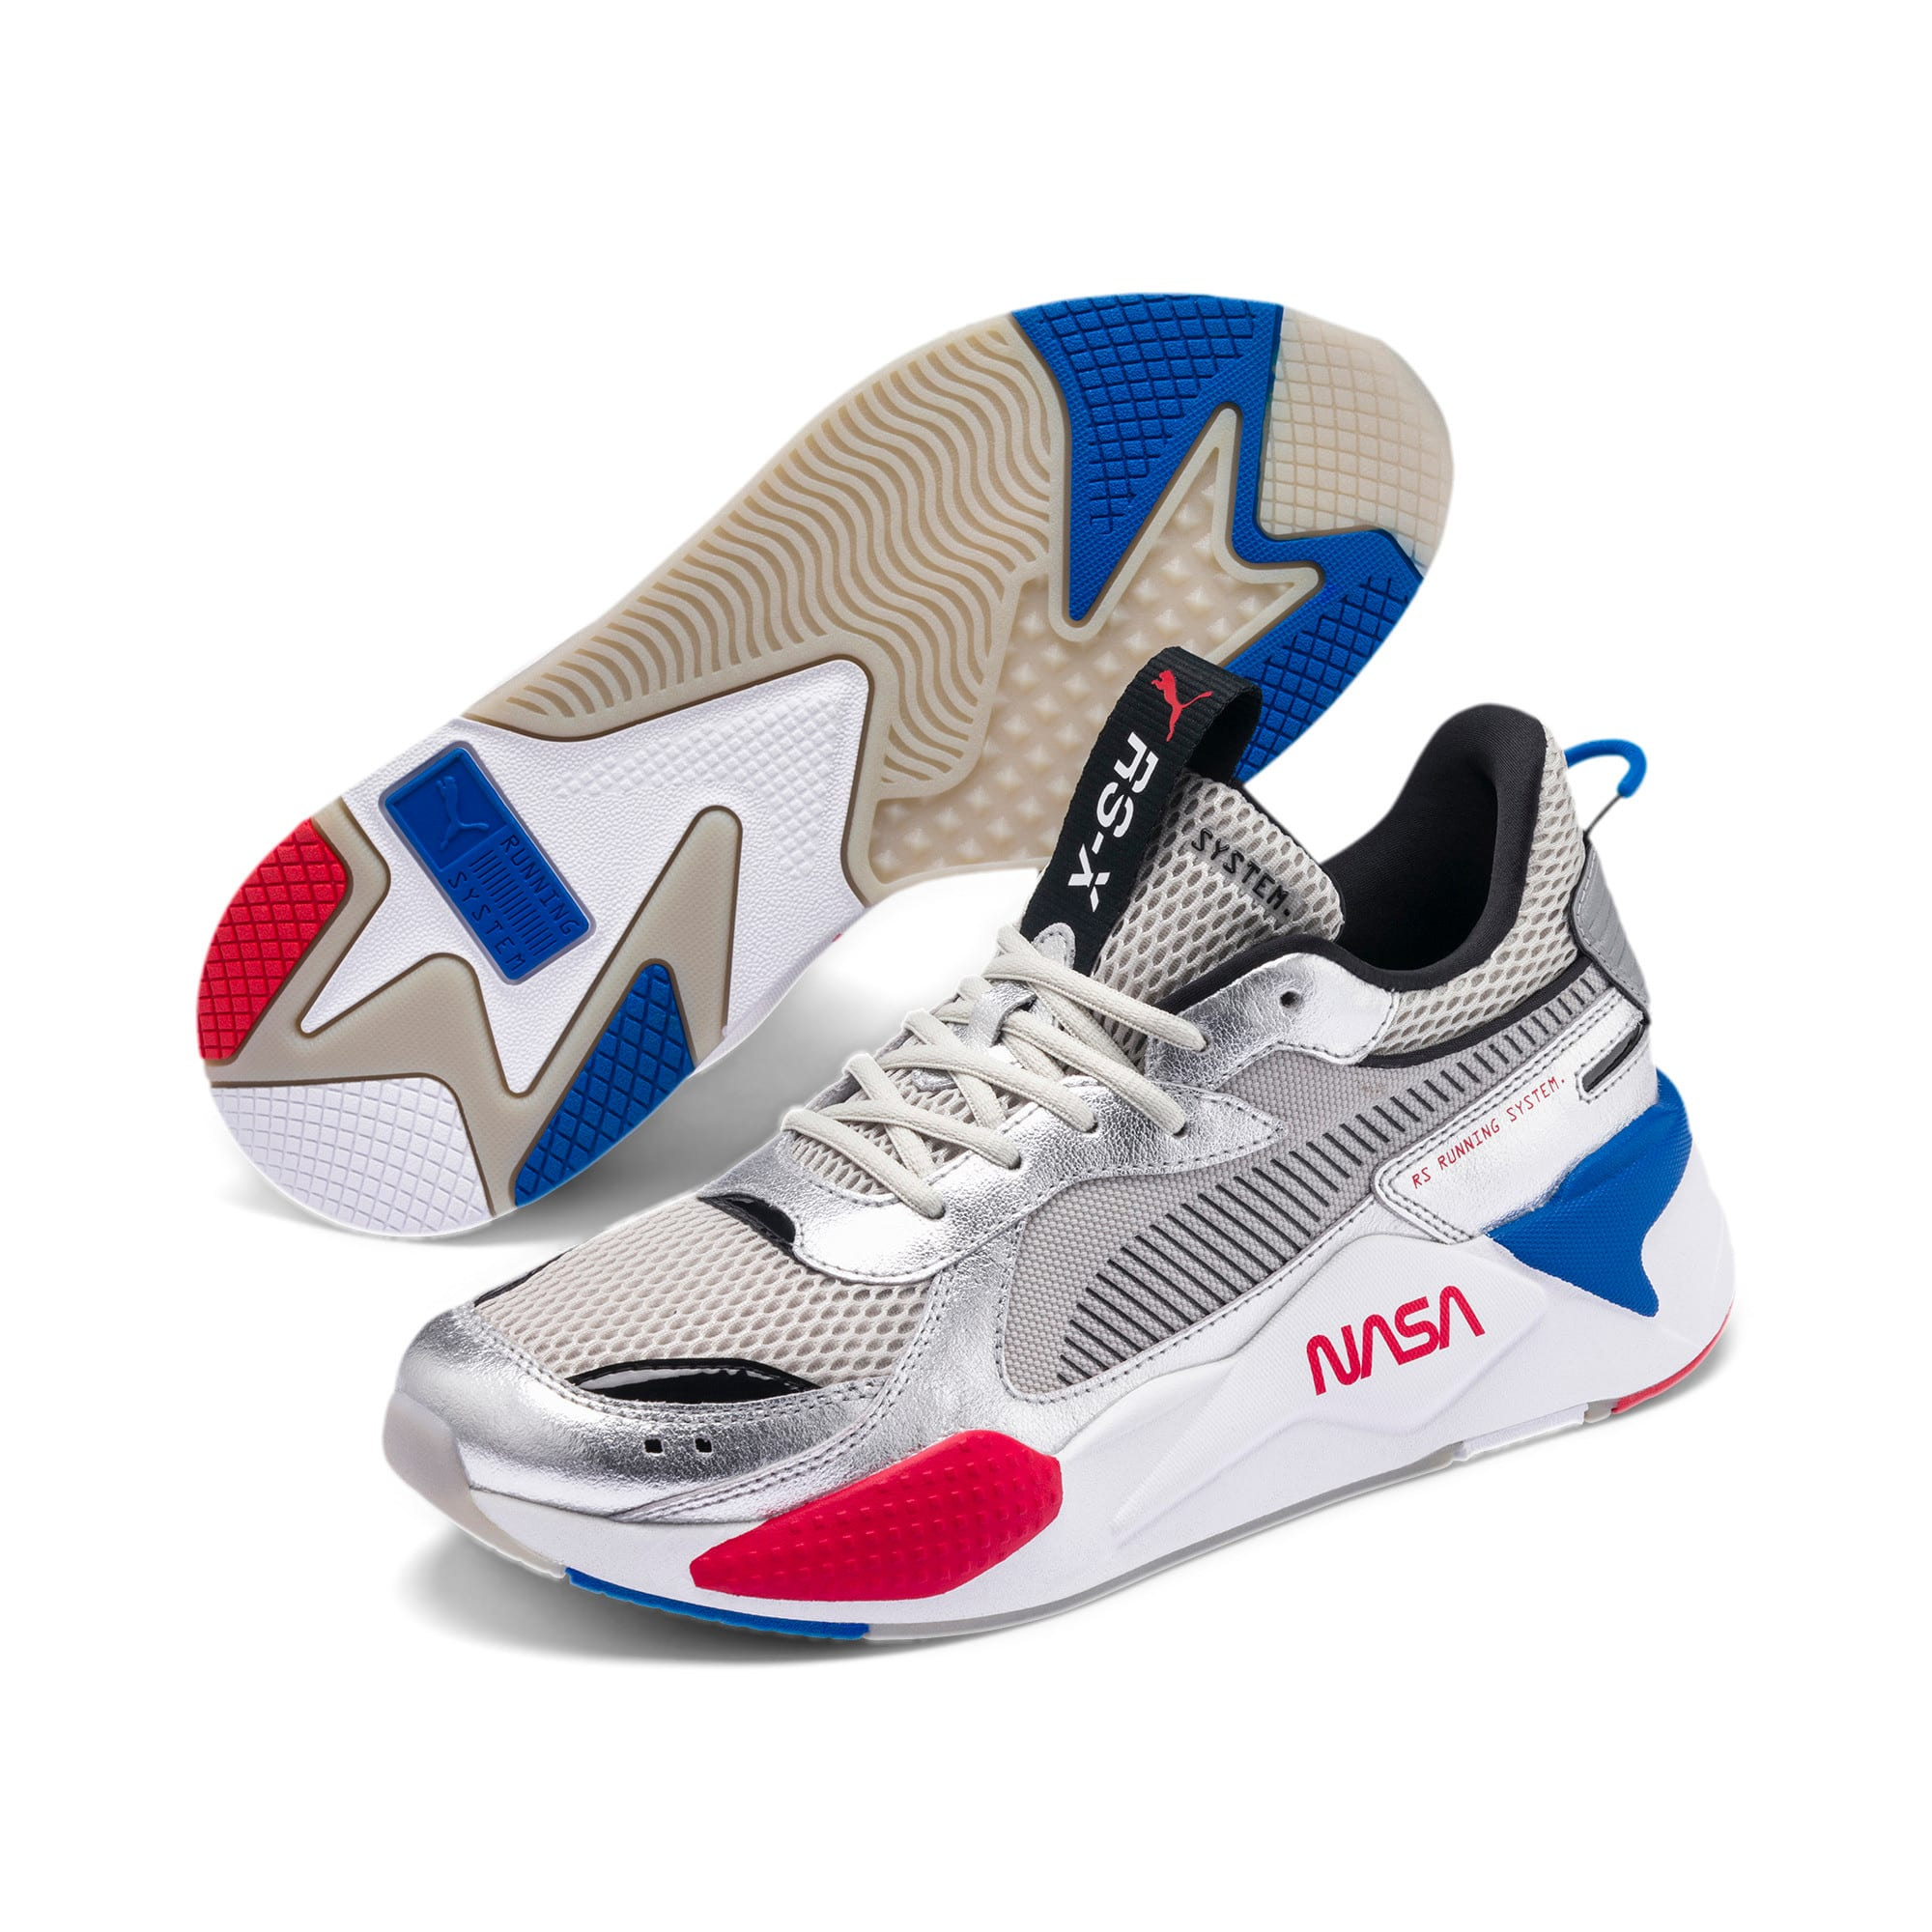 Thumbnail 2 of RS-X Space Agency Sneakers, Puma Silver-Gray Violet, medium